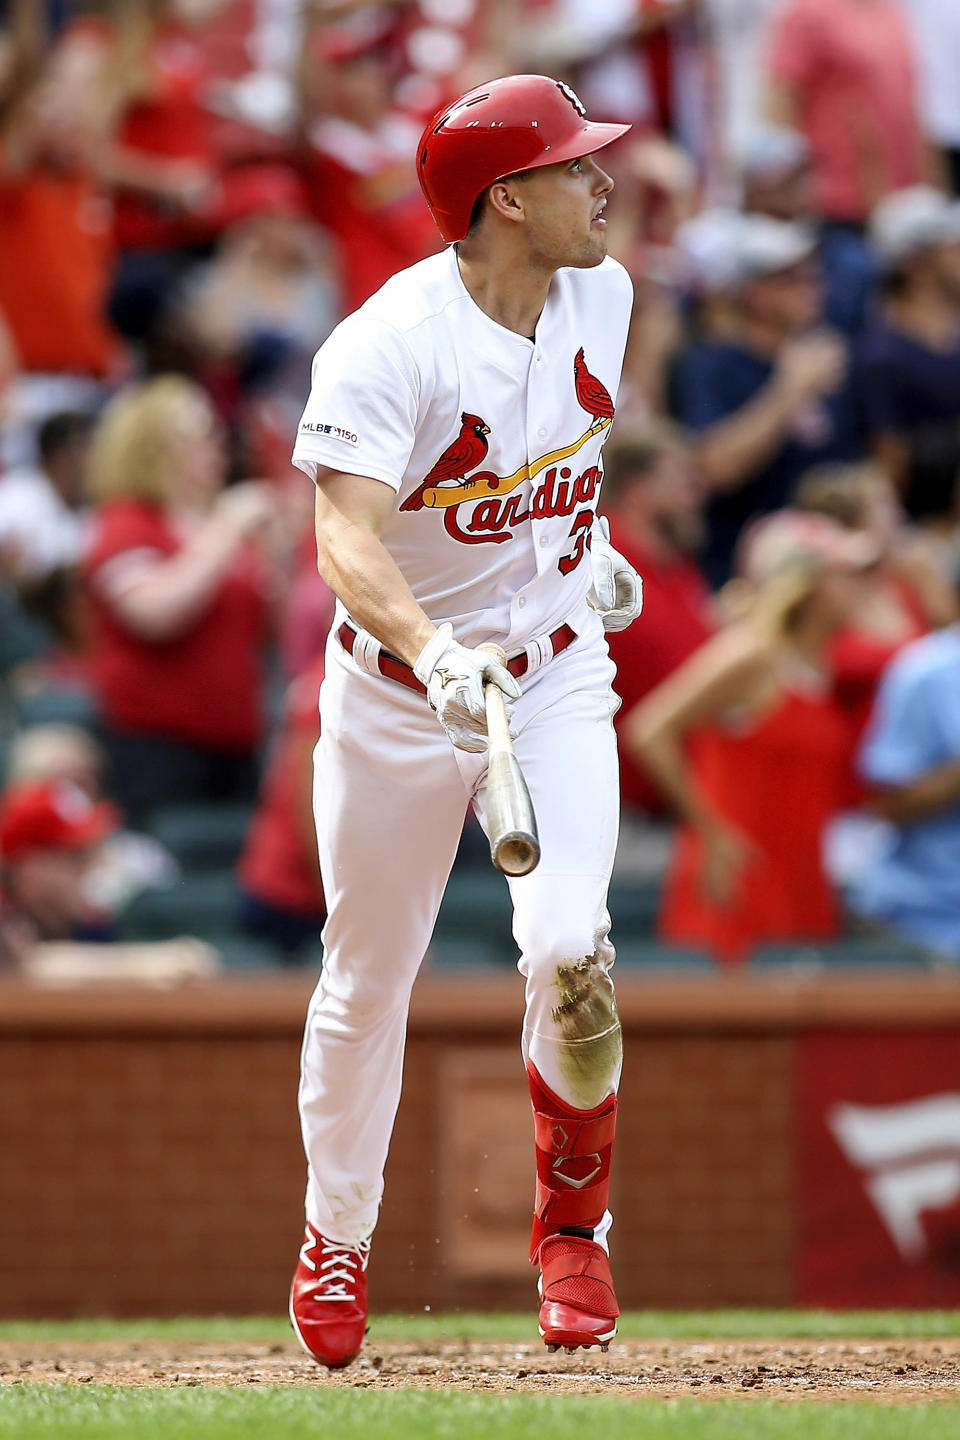 St. Louis Cardinals' Lane Thomas watches his grand slam as he runs the bases during the seventh inning of a baseball game against the Pittsburgh Pirates, Sunday, Aug. 11, 2019, in St. Louis. (AP Photo/Scott Kane)